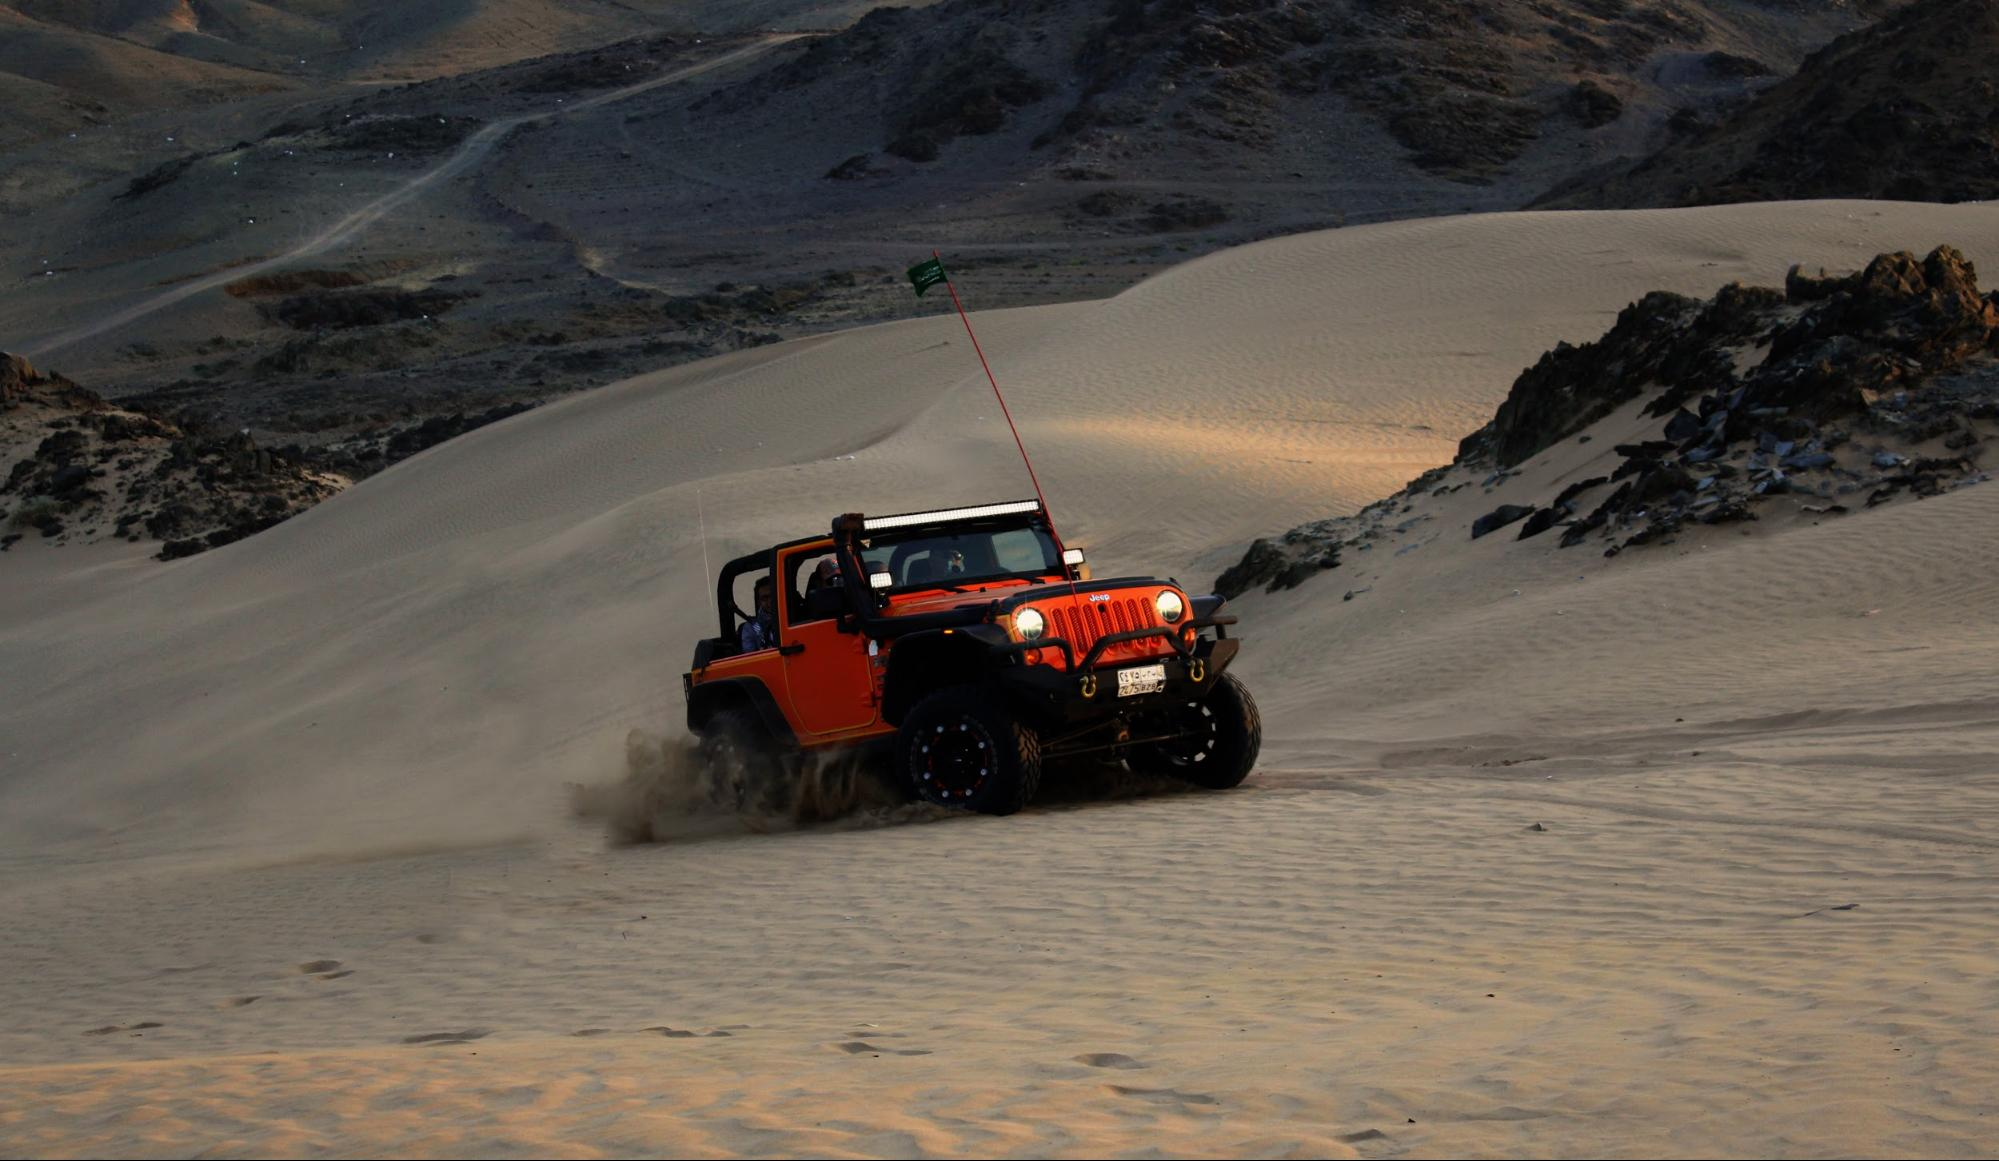 Using your car to get out in the wilderness